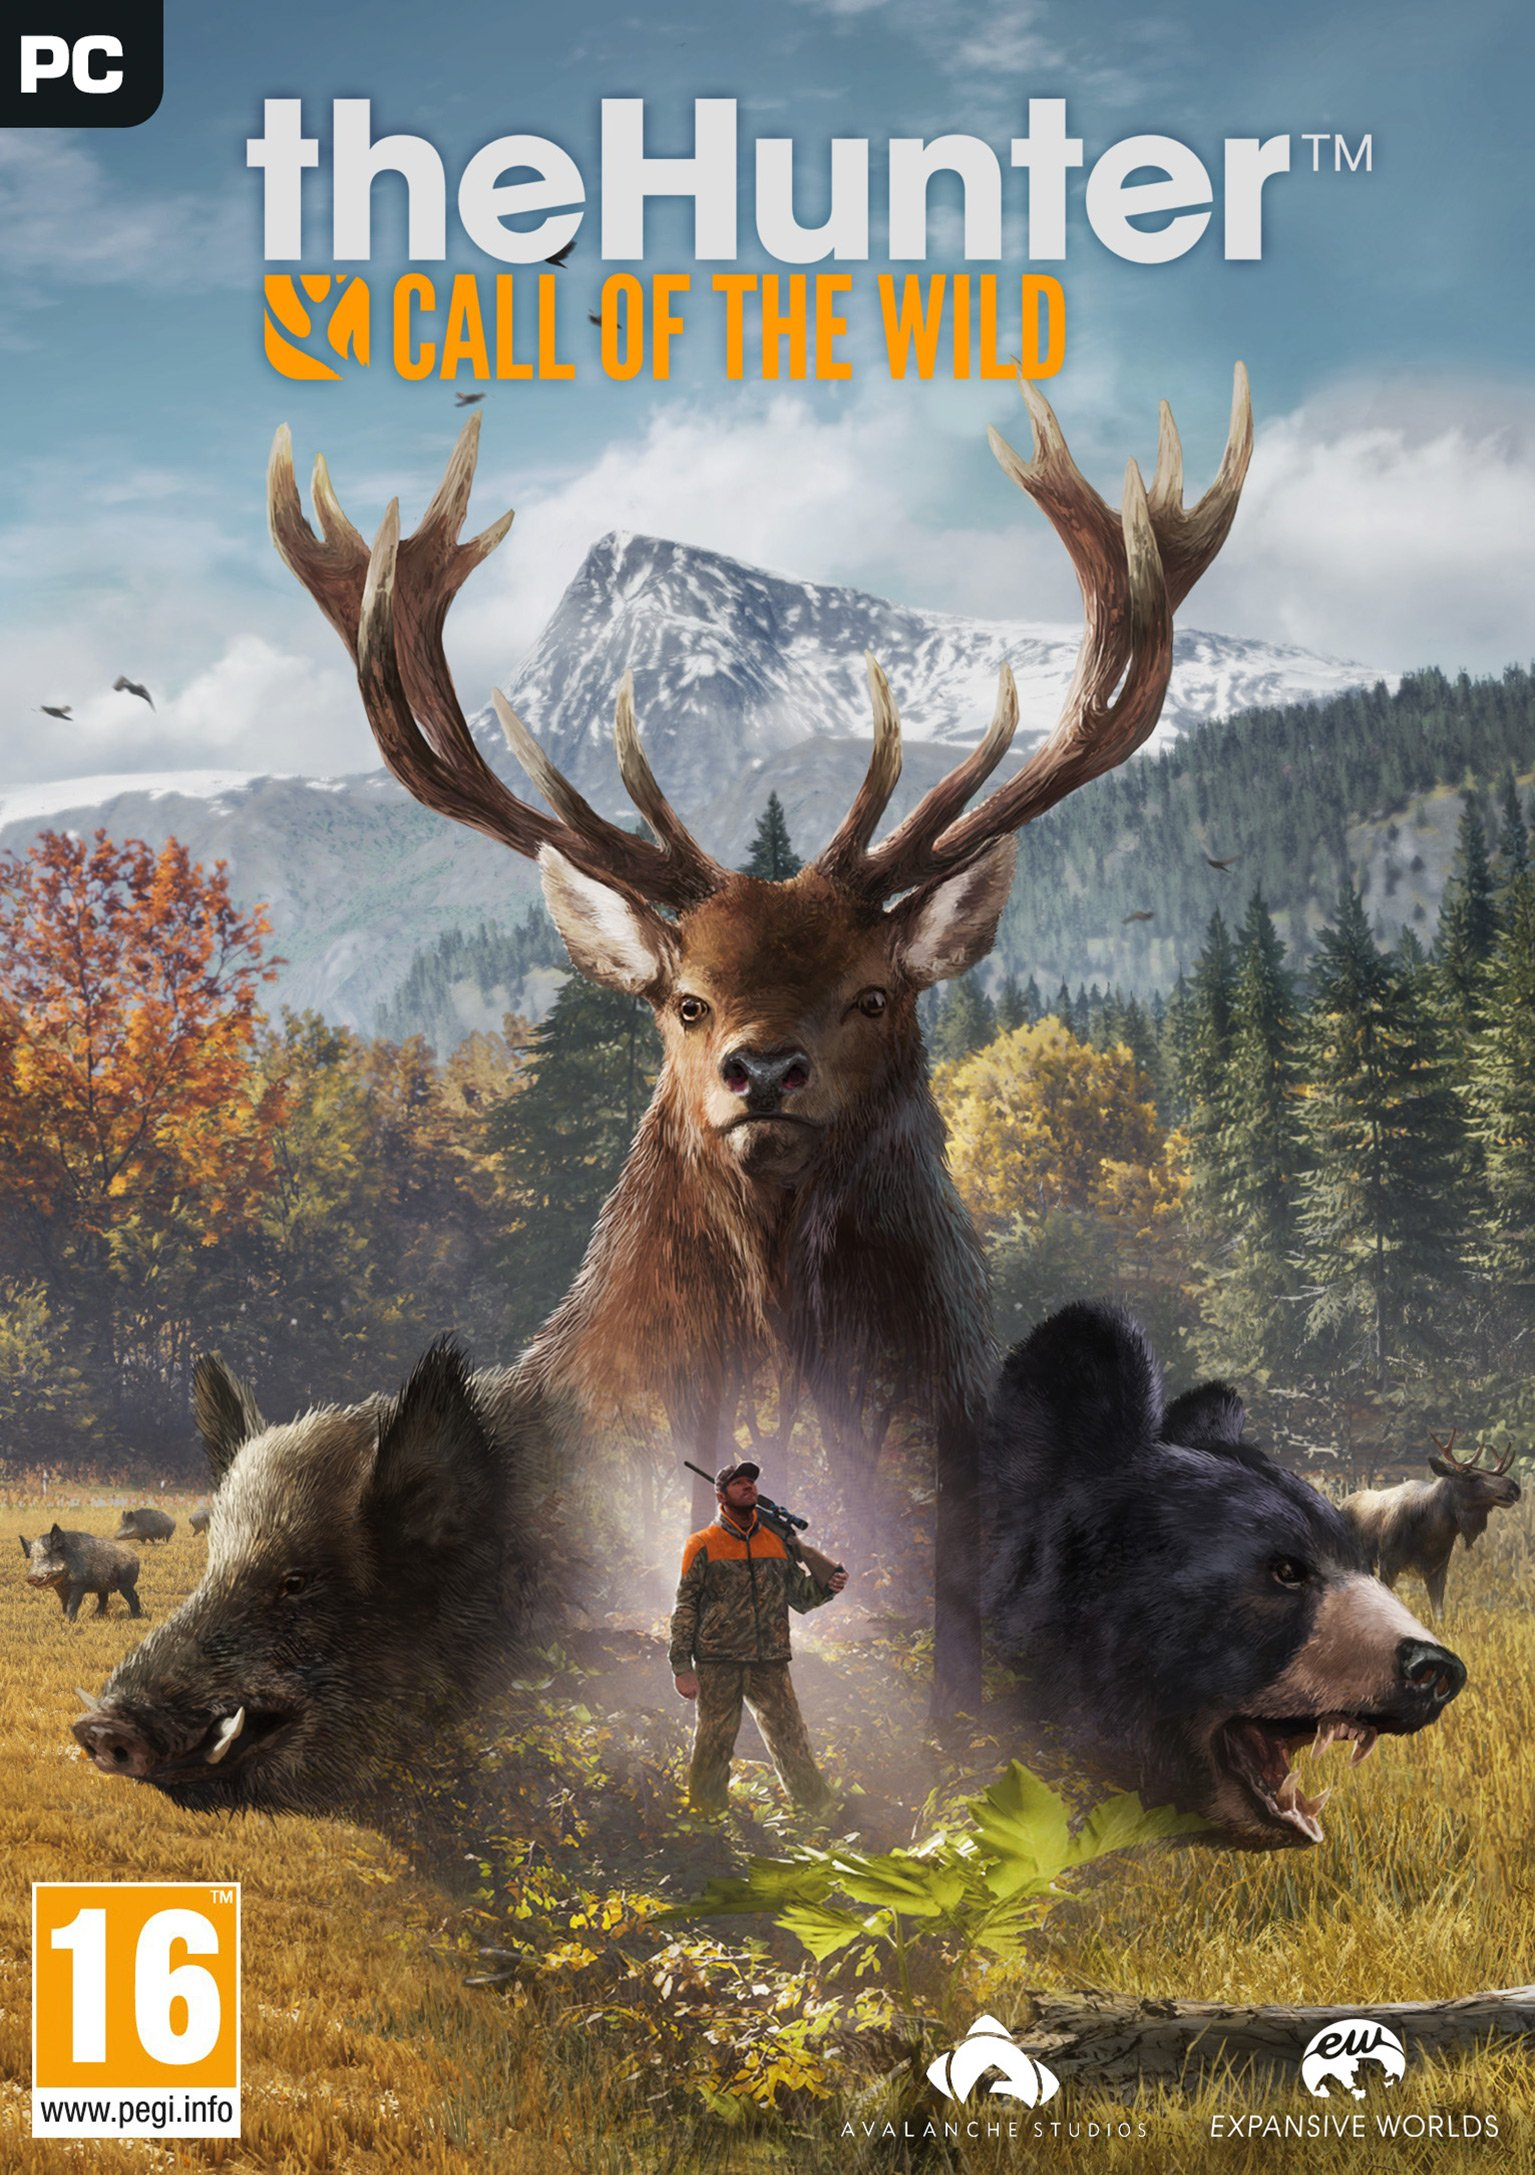 TheHunter: Call of the Wild [v 1898534+DLC] (2017) (2017)